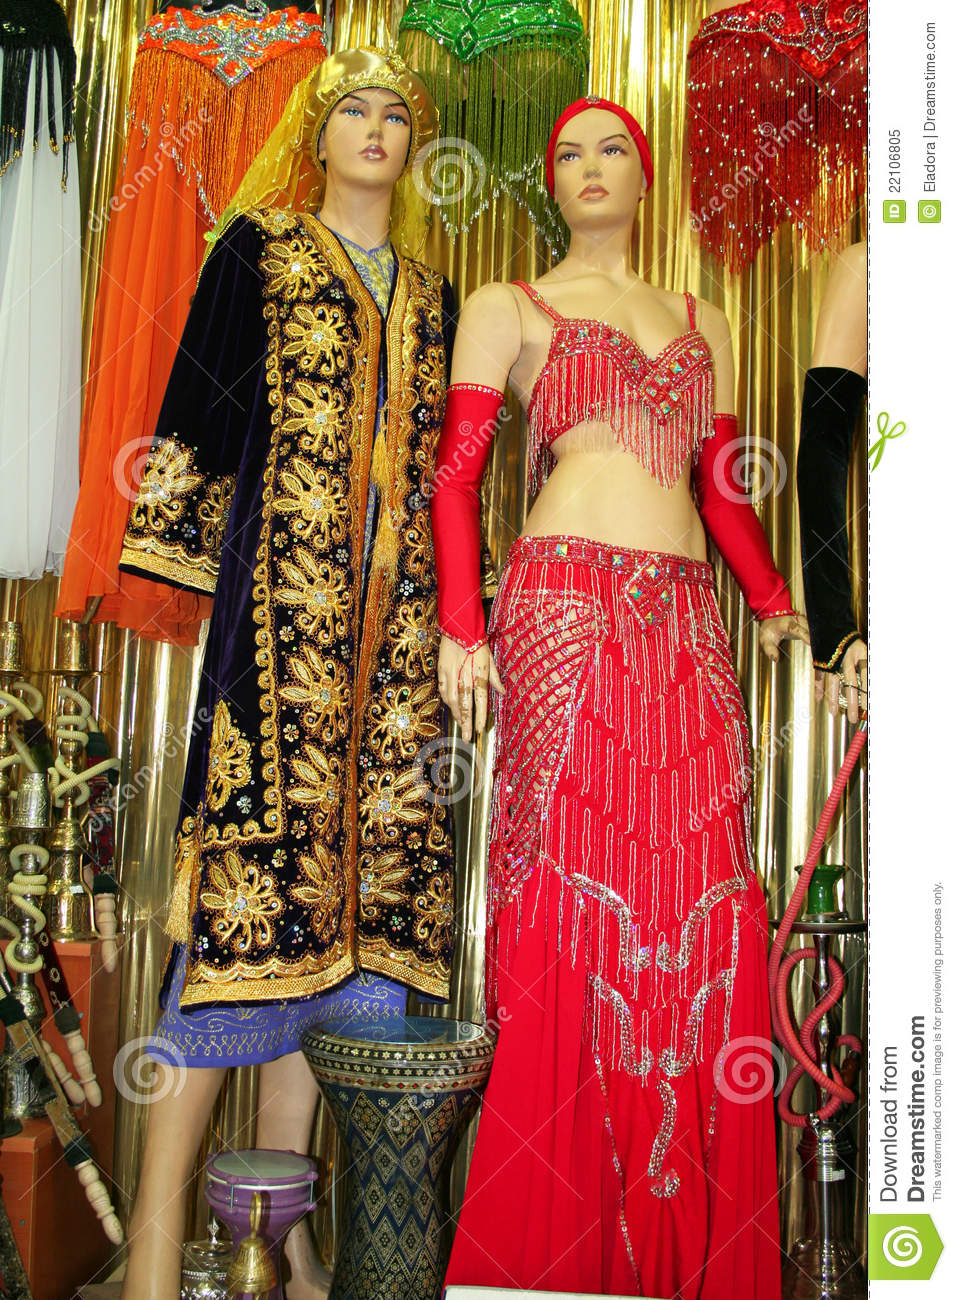 hindu singles in lester Leicester's best 100% free hindu dating site meet thousands of single hindus in leicester with mingle2's free hindu personal ads and chat rooms our network of hindu men and women in leicester is the perfect place to make hindu friends or find a hindu boyfriend or girlfriend in leicester.